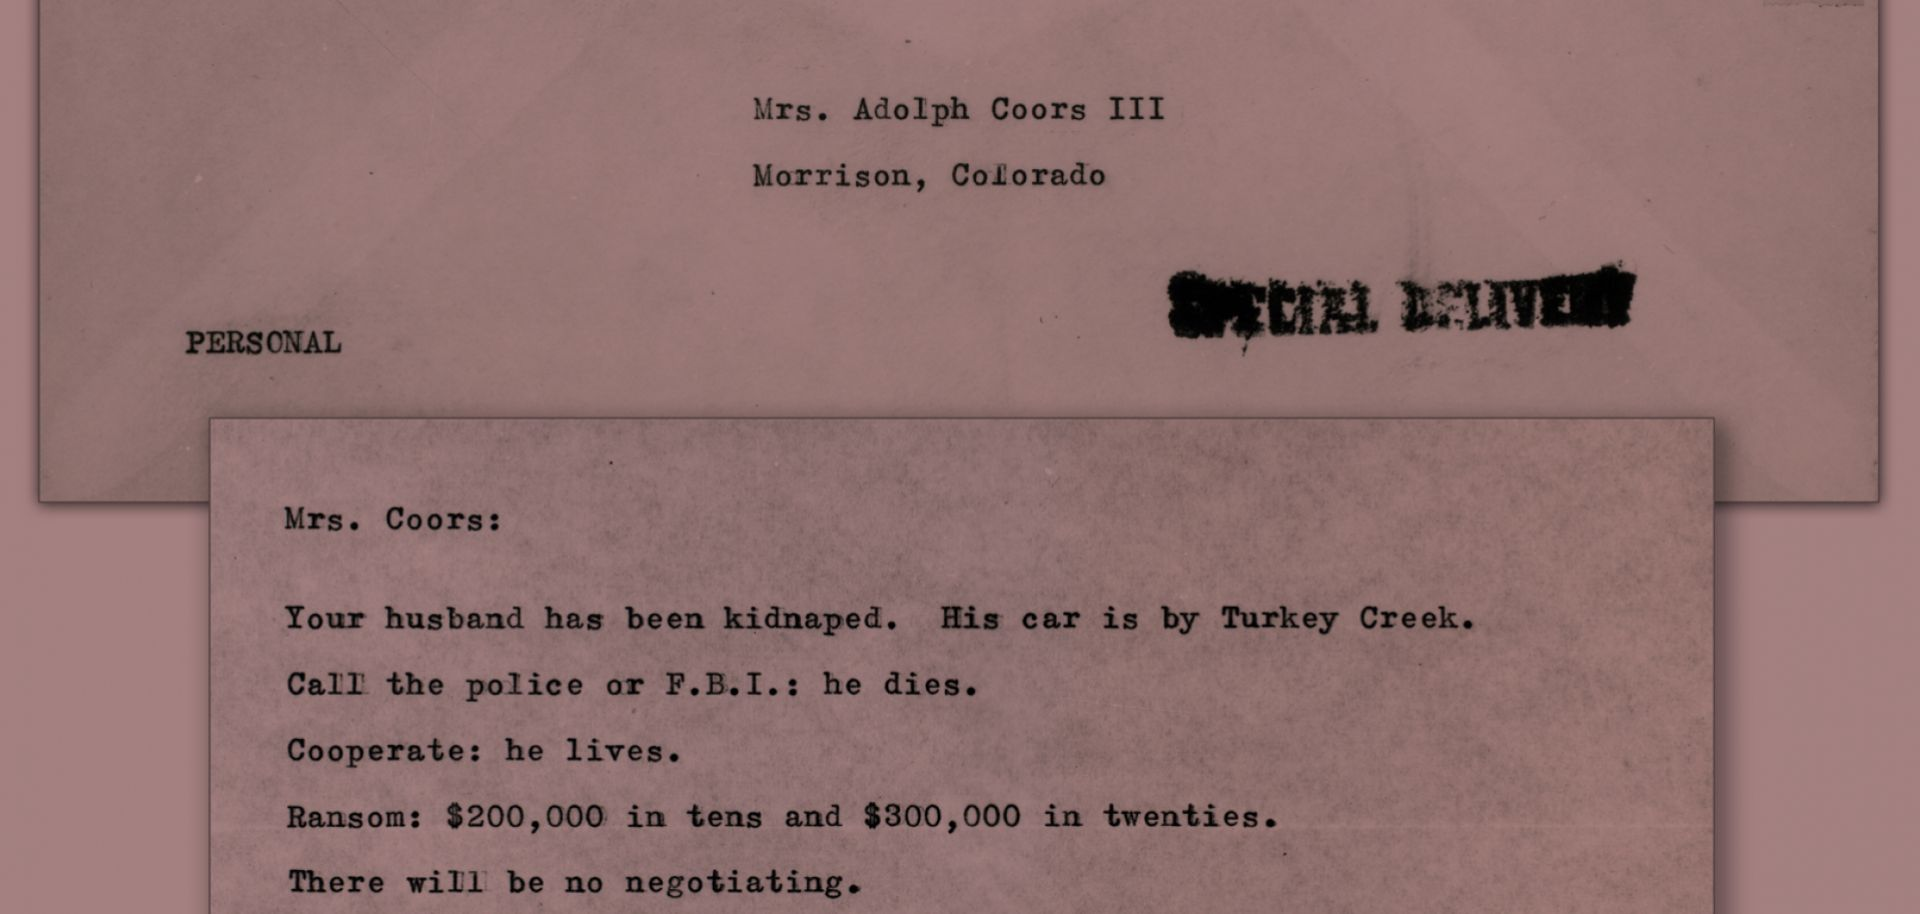 Joseph Corbett killed Adolph Coors III in 1960 during a botched kidnapping for ransom.